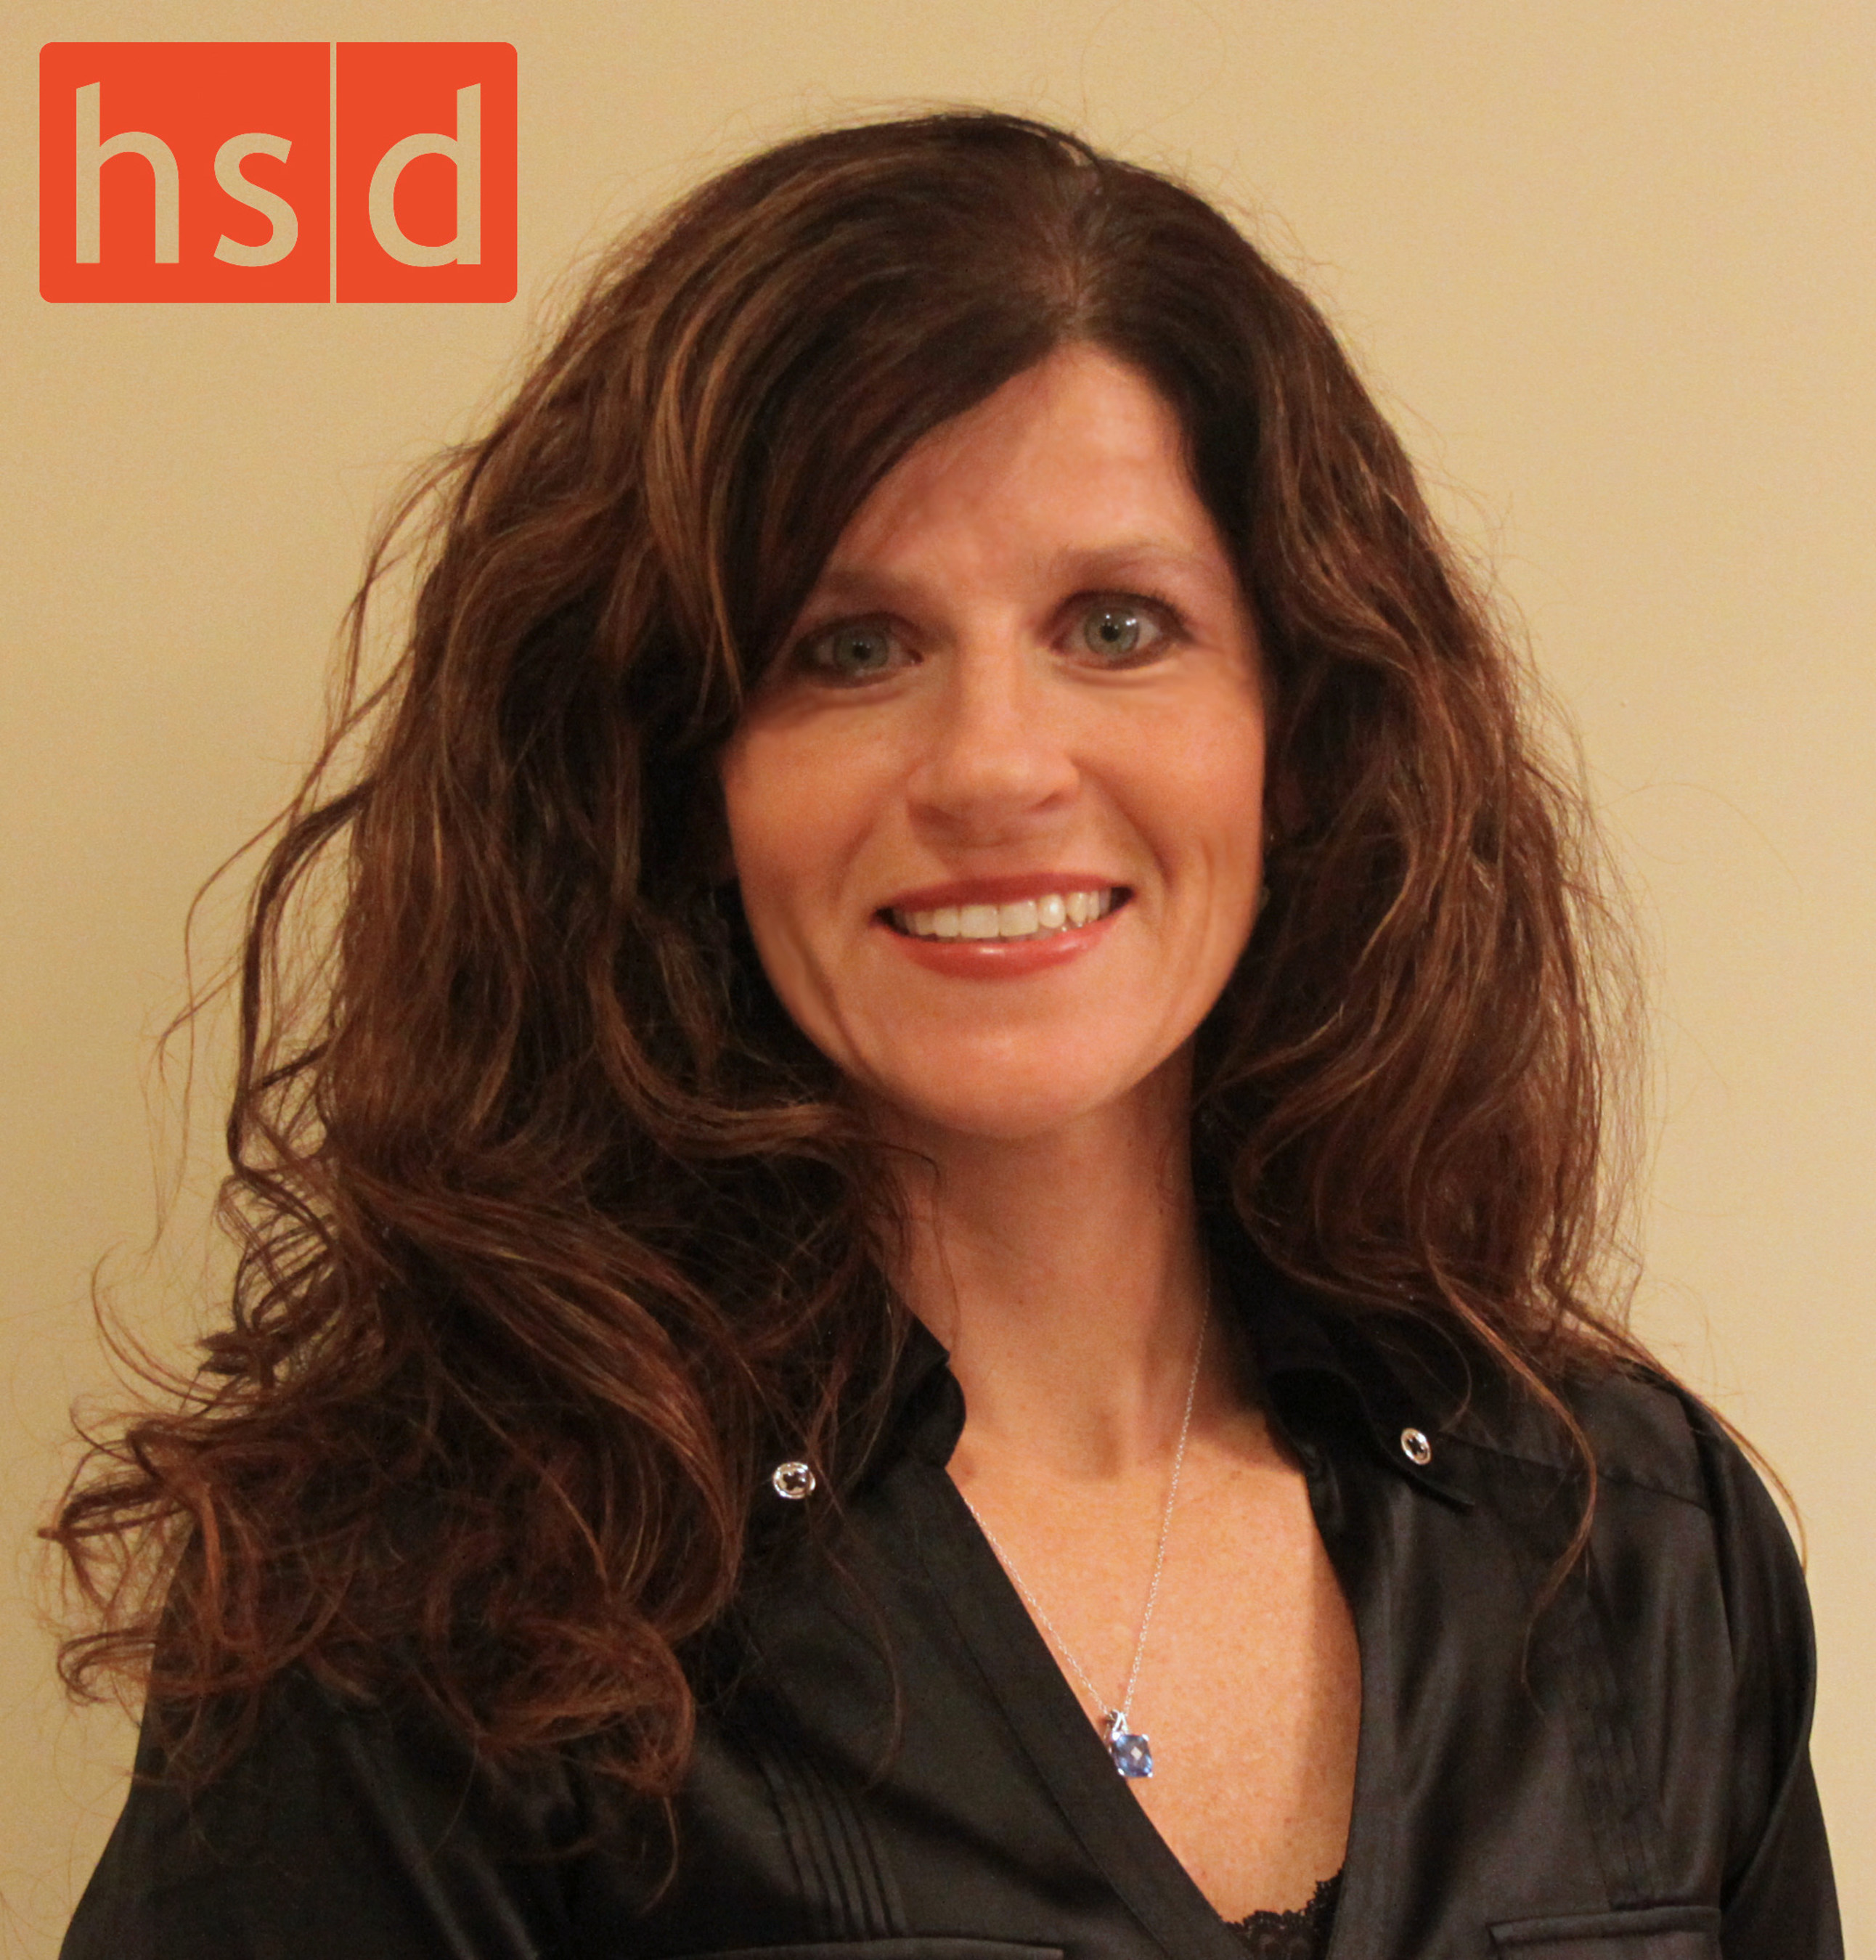 Hs Design Inc Expands Its Expertise In Usability And Human Factors Engineering